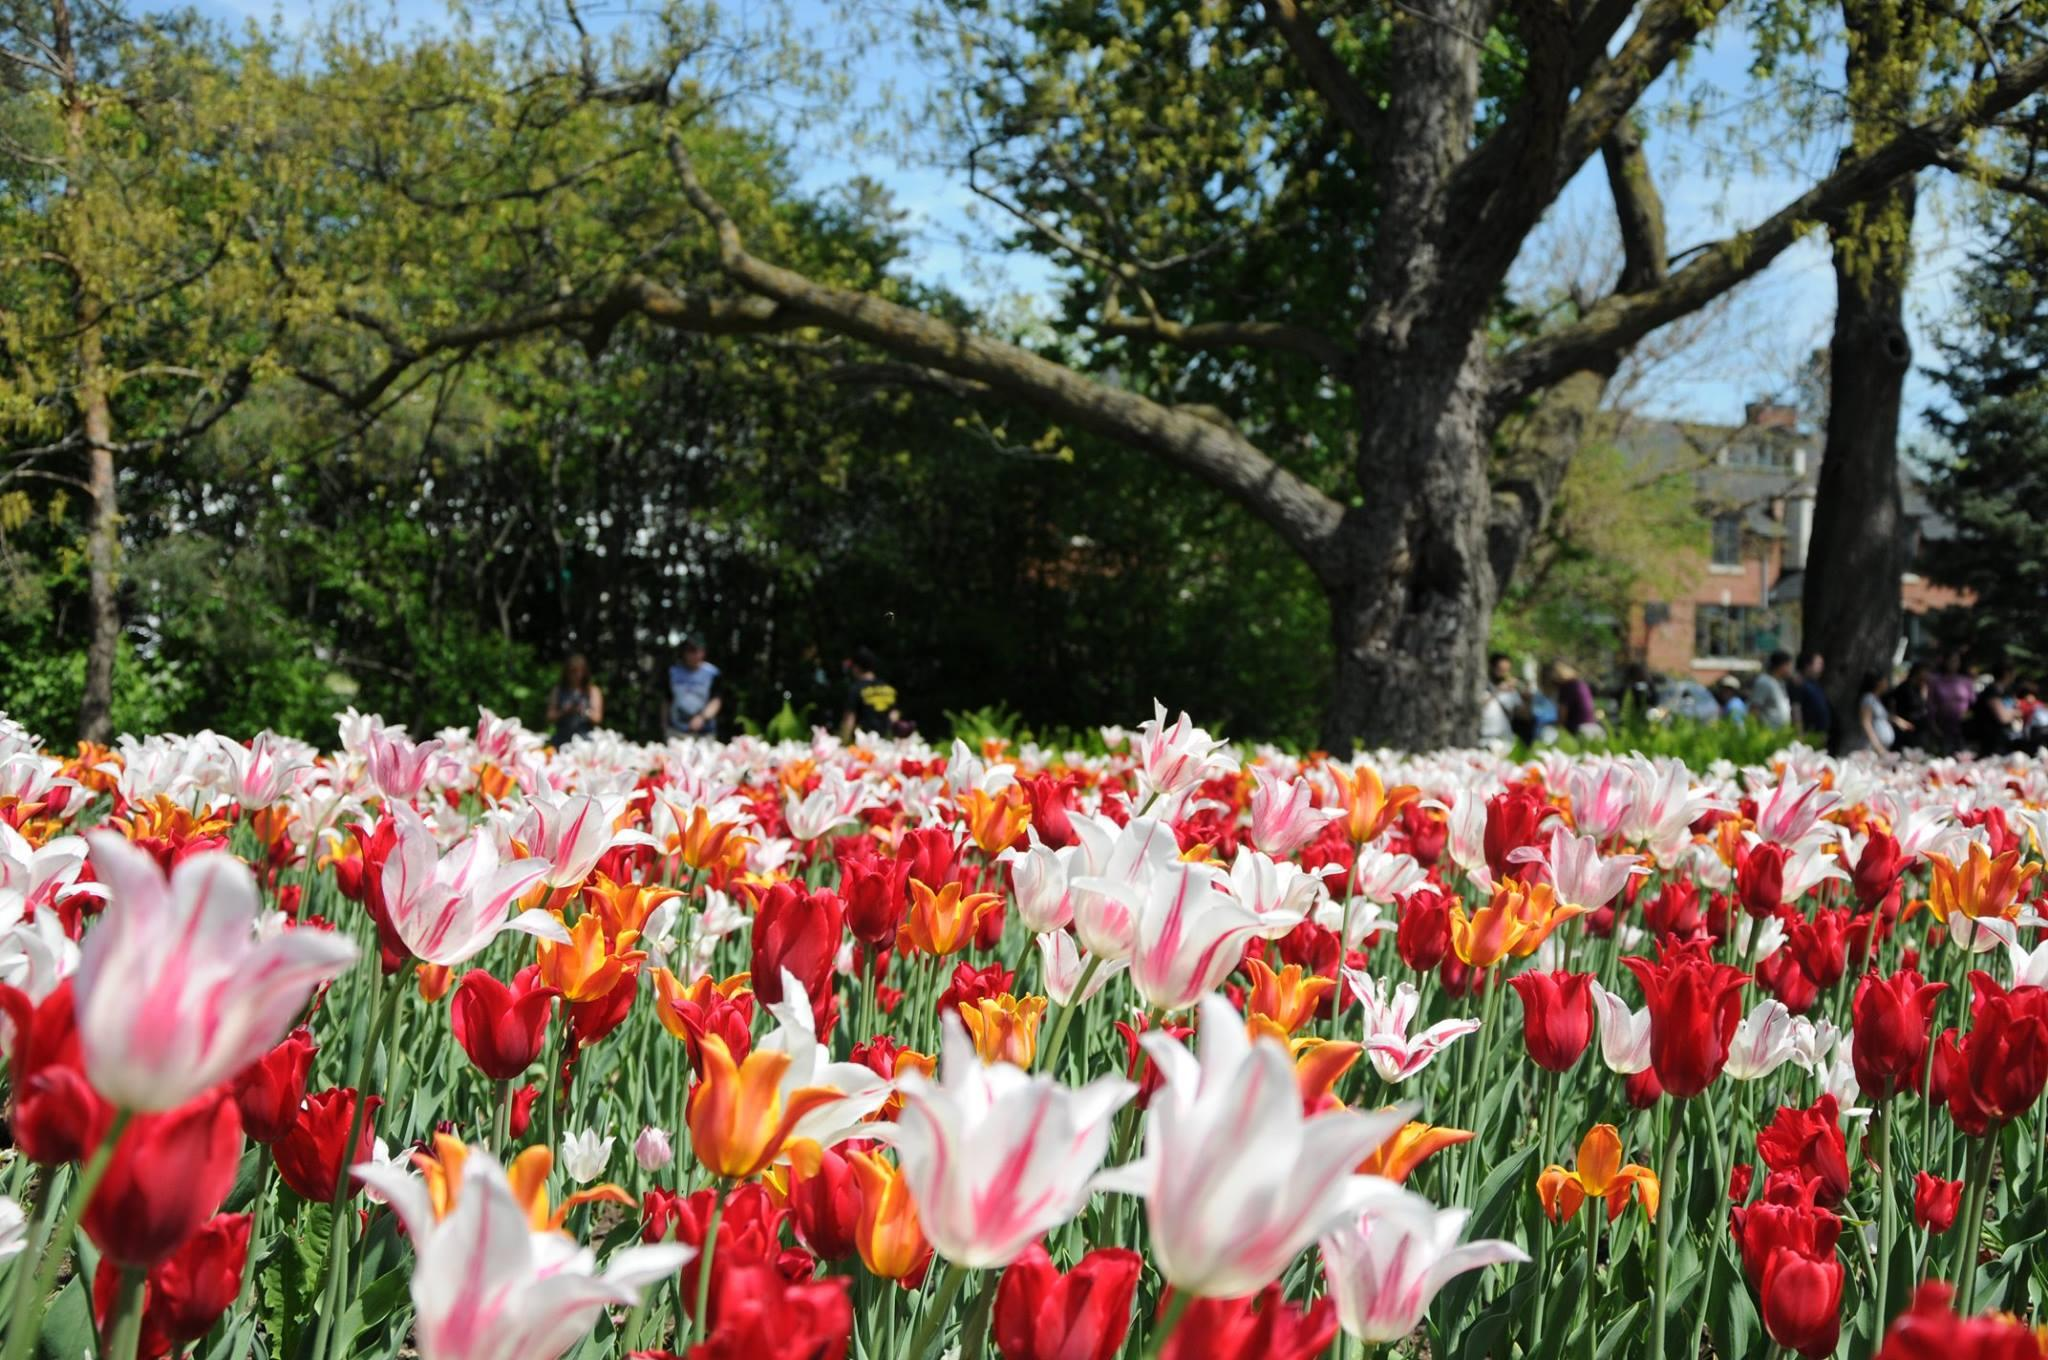 Don't miss these Instagram-worthy tulips in the Capital this May